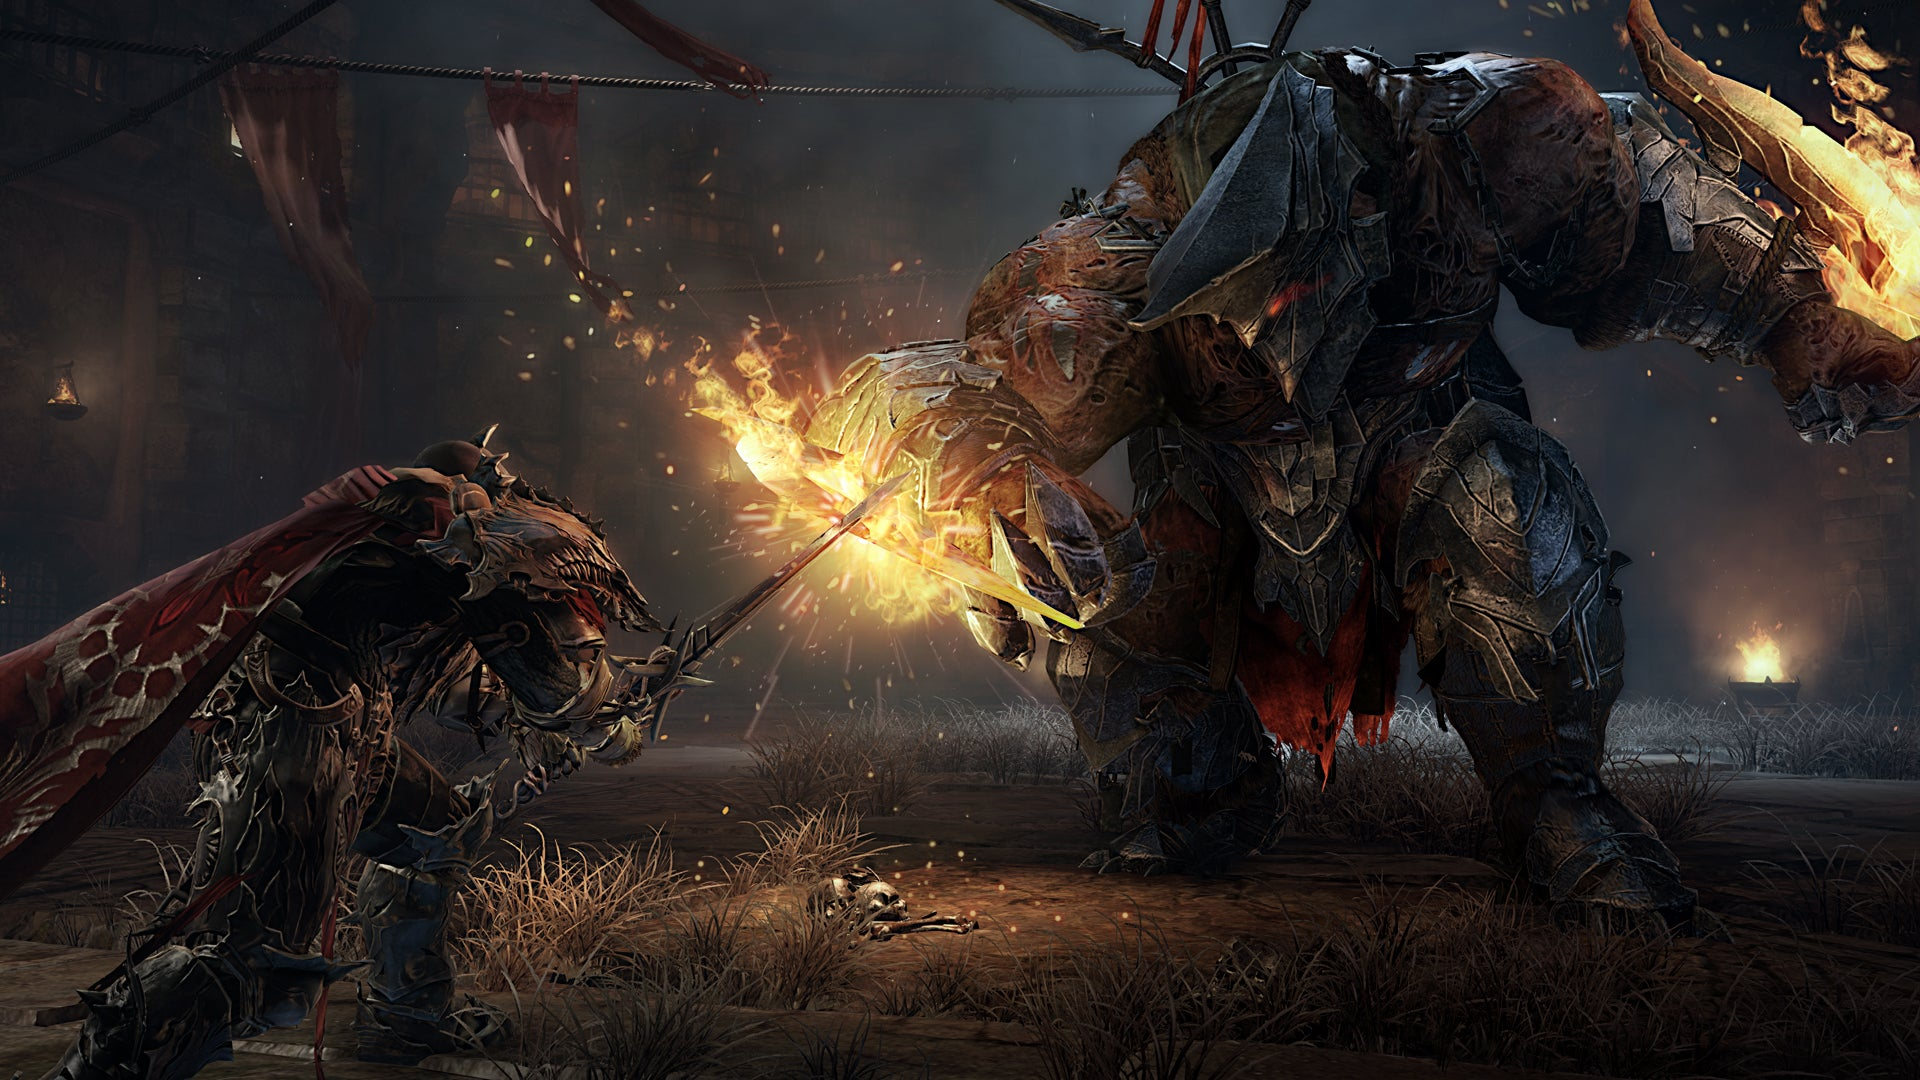 Lords of the Fallen review: A nail-bitingly hard adventure